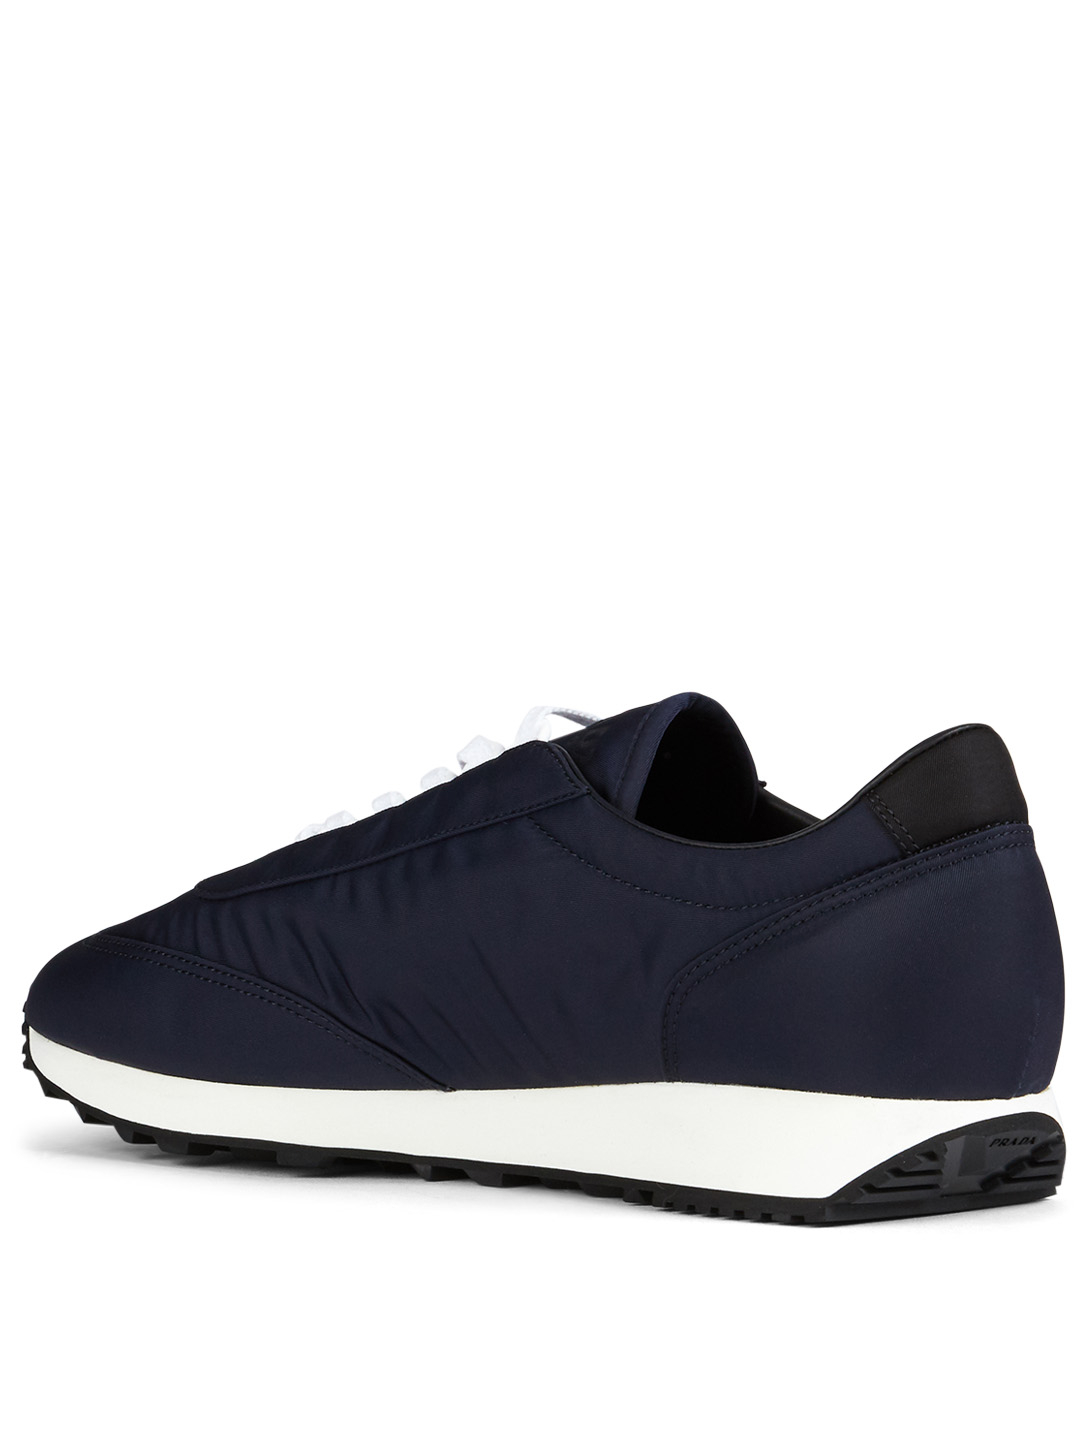 PRADA MLN70 Nylon Sneakers Men's Blue